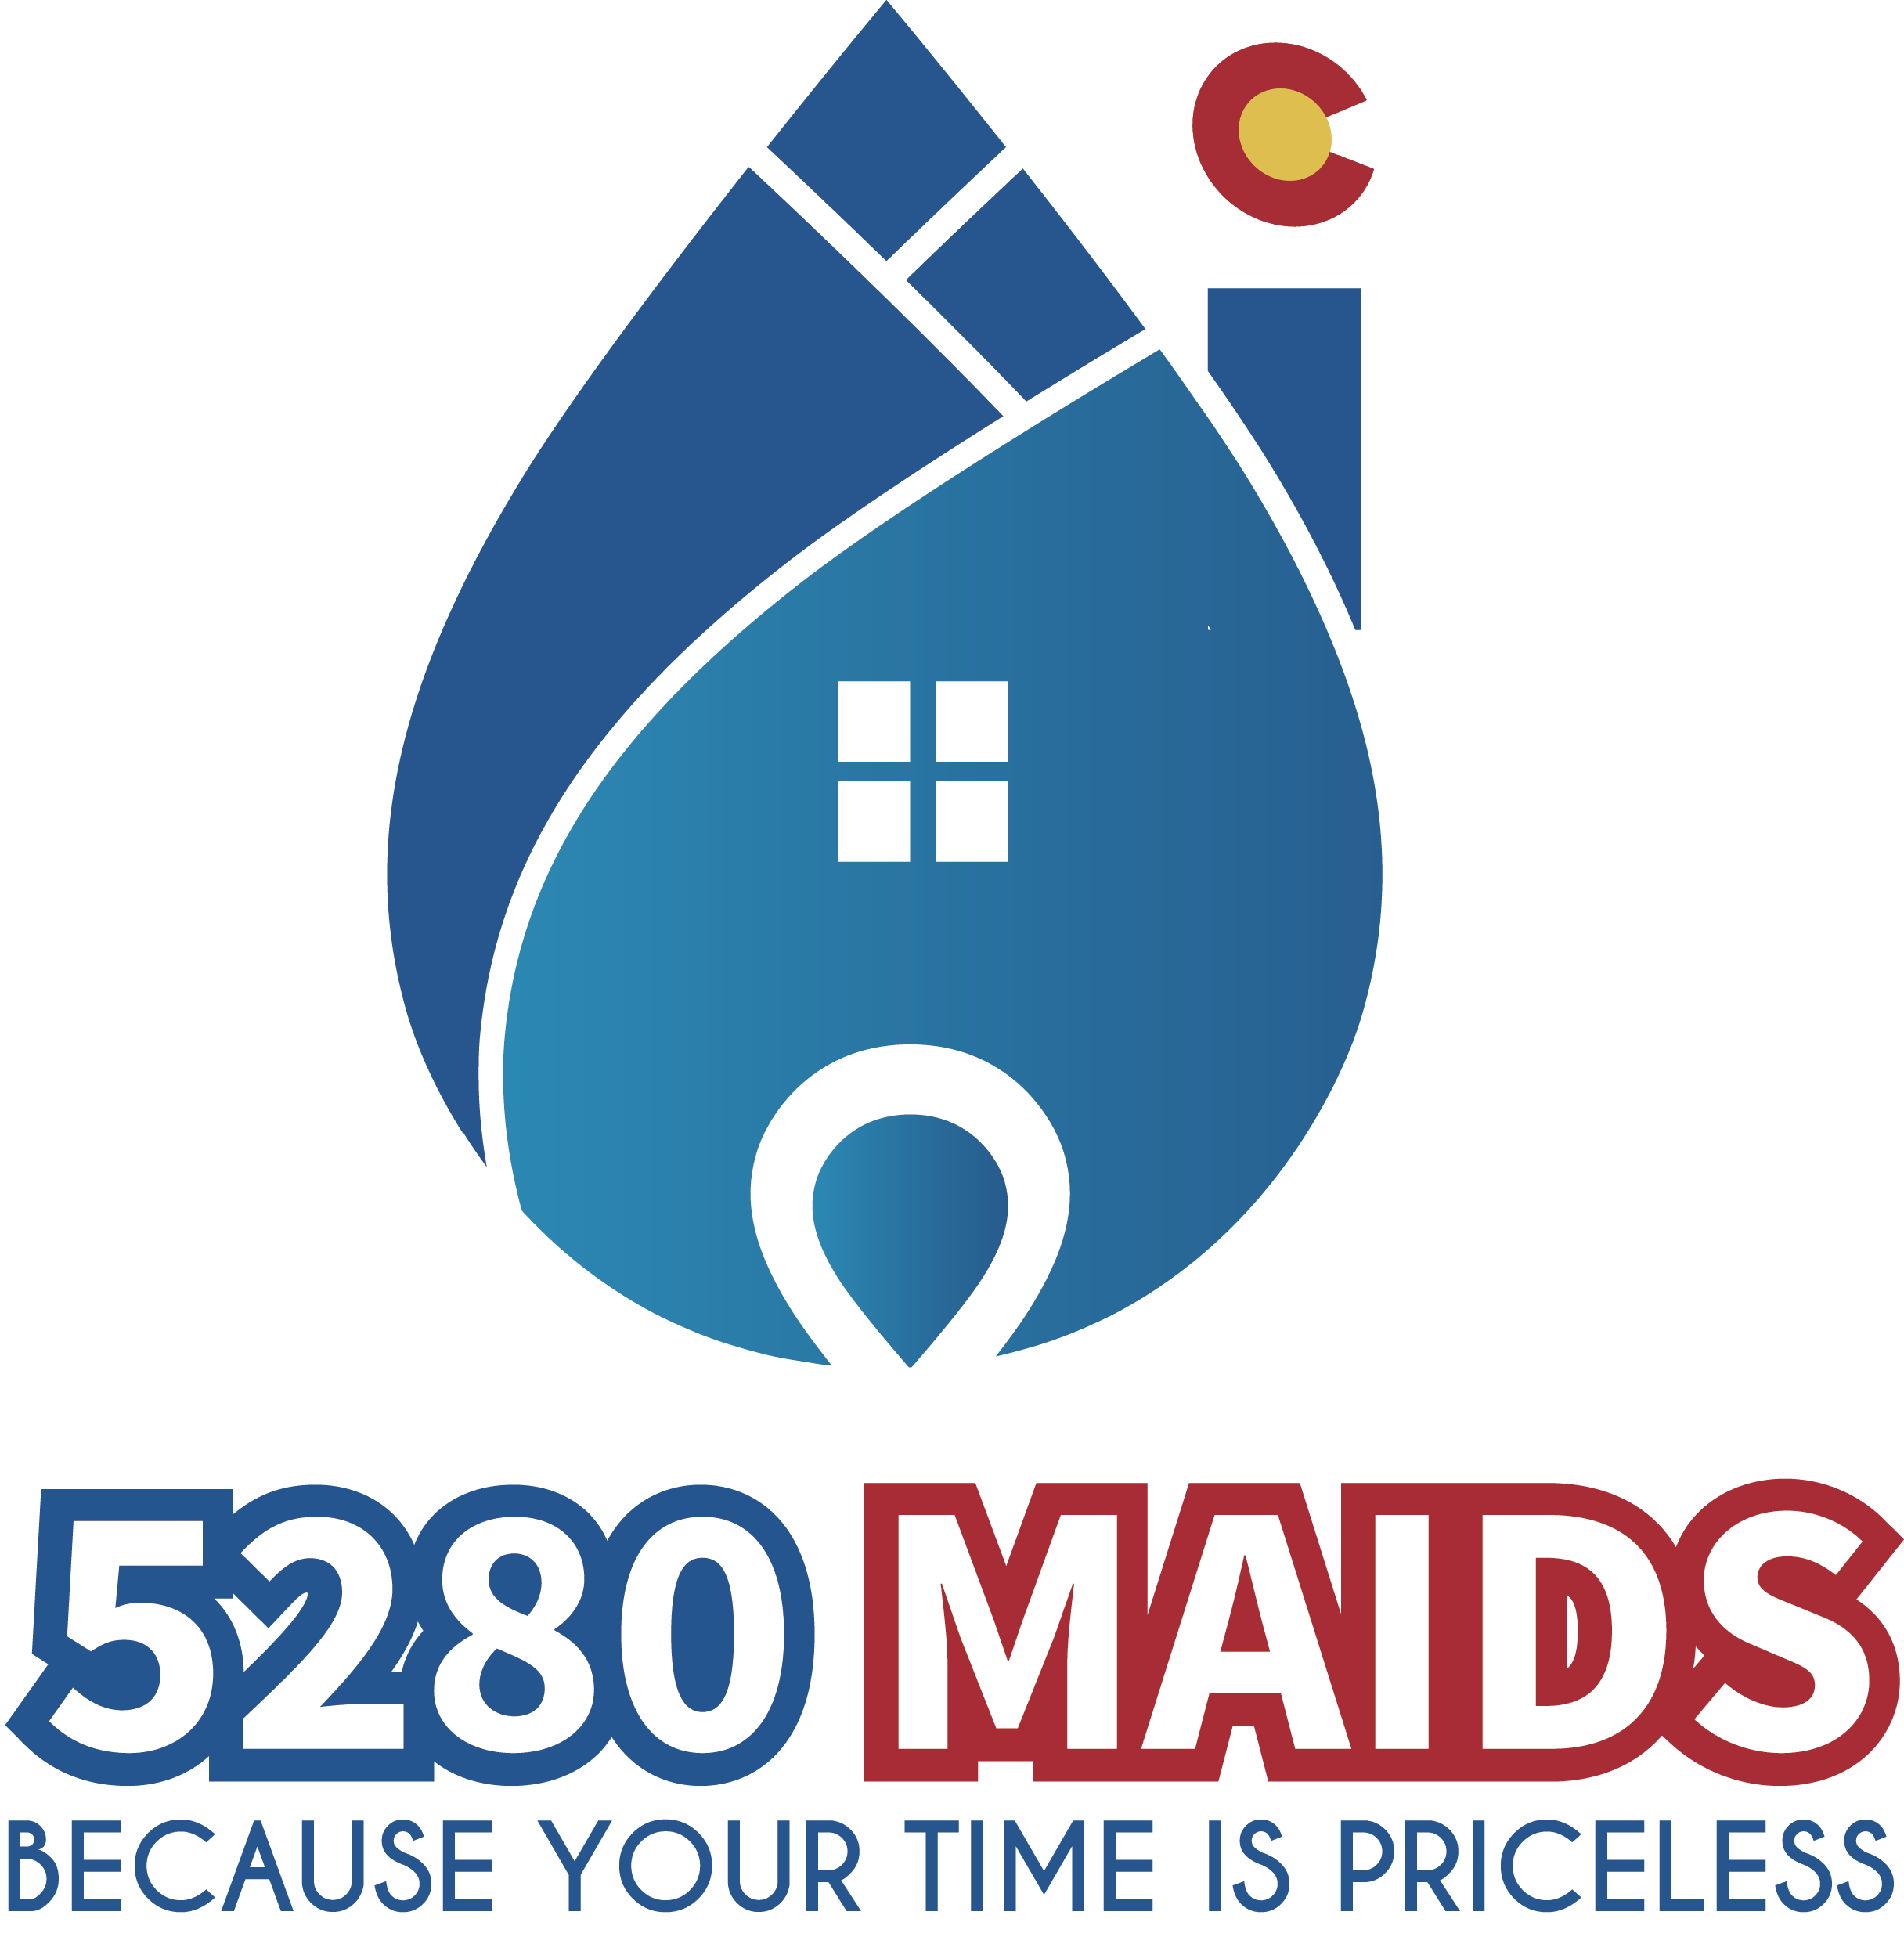 Lets see who can go the extra mile for 5280 Maids